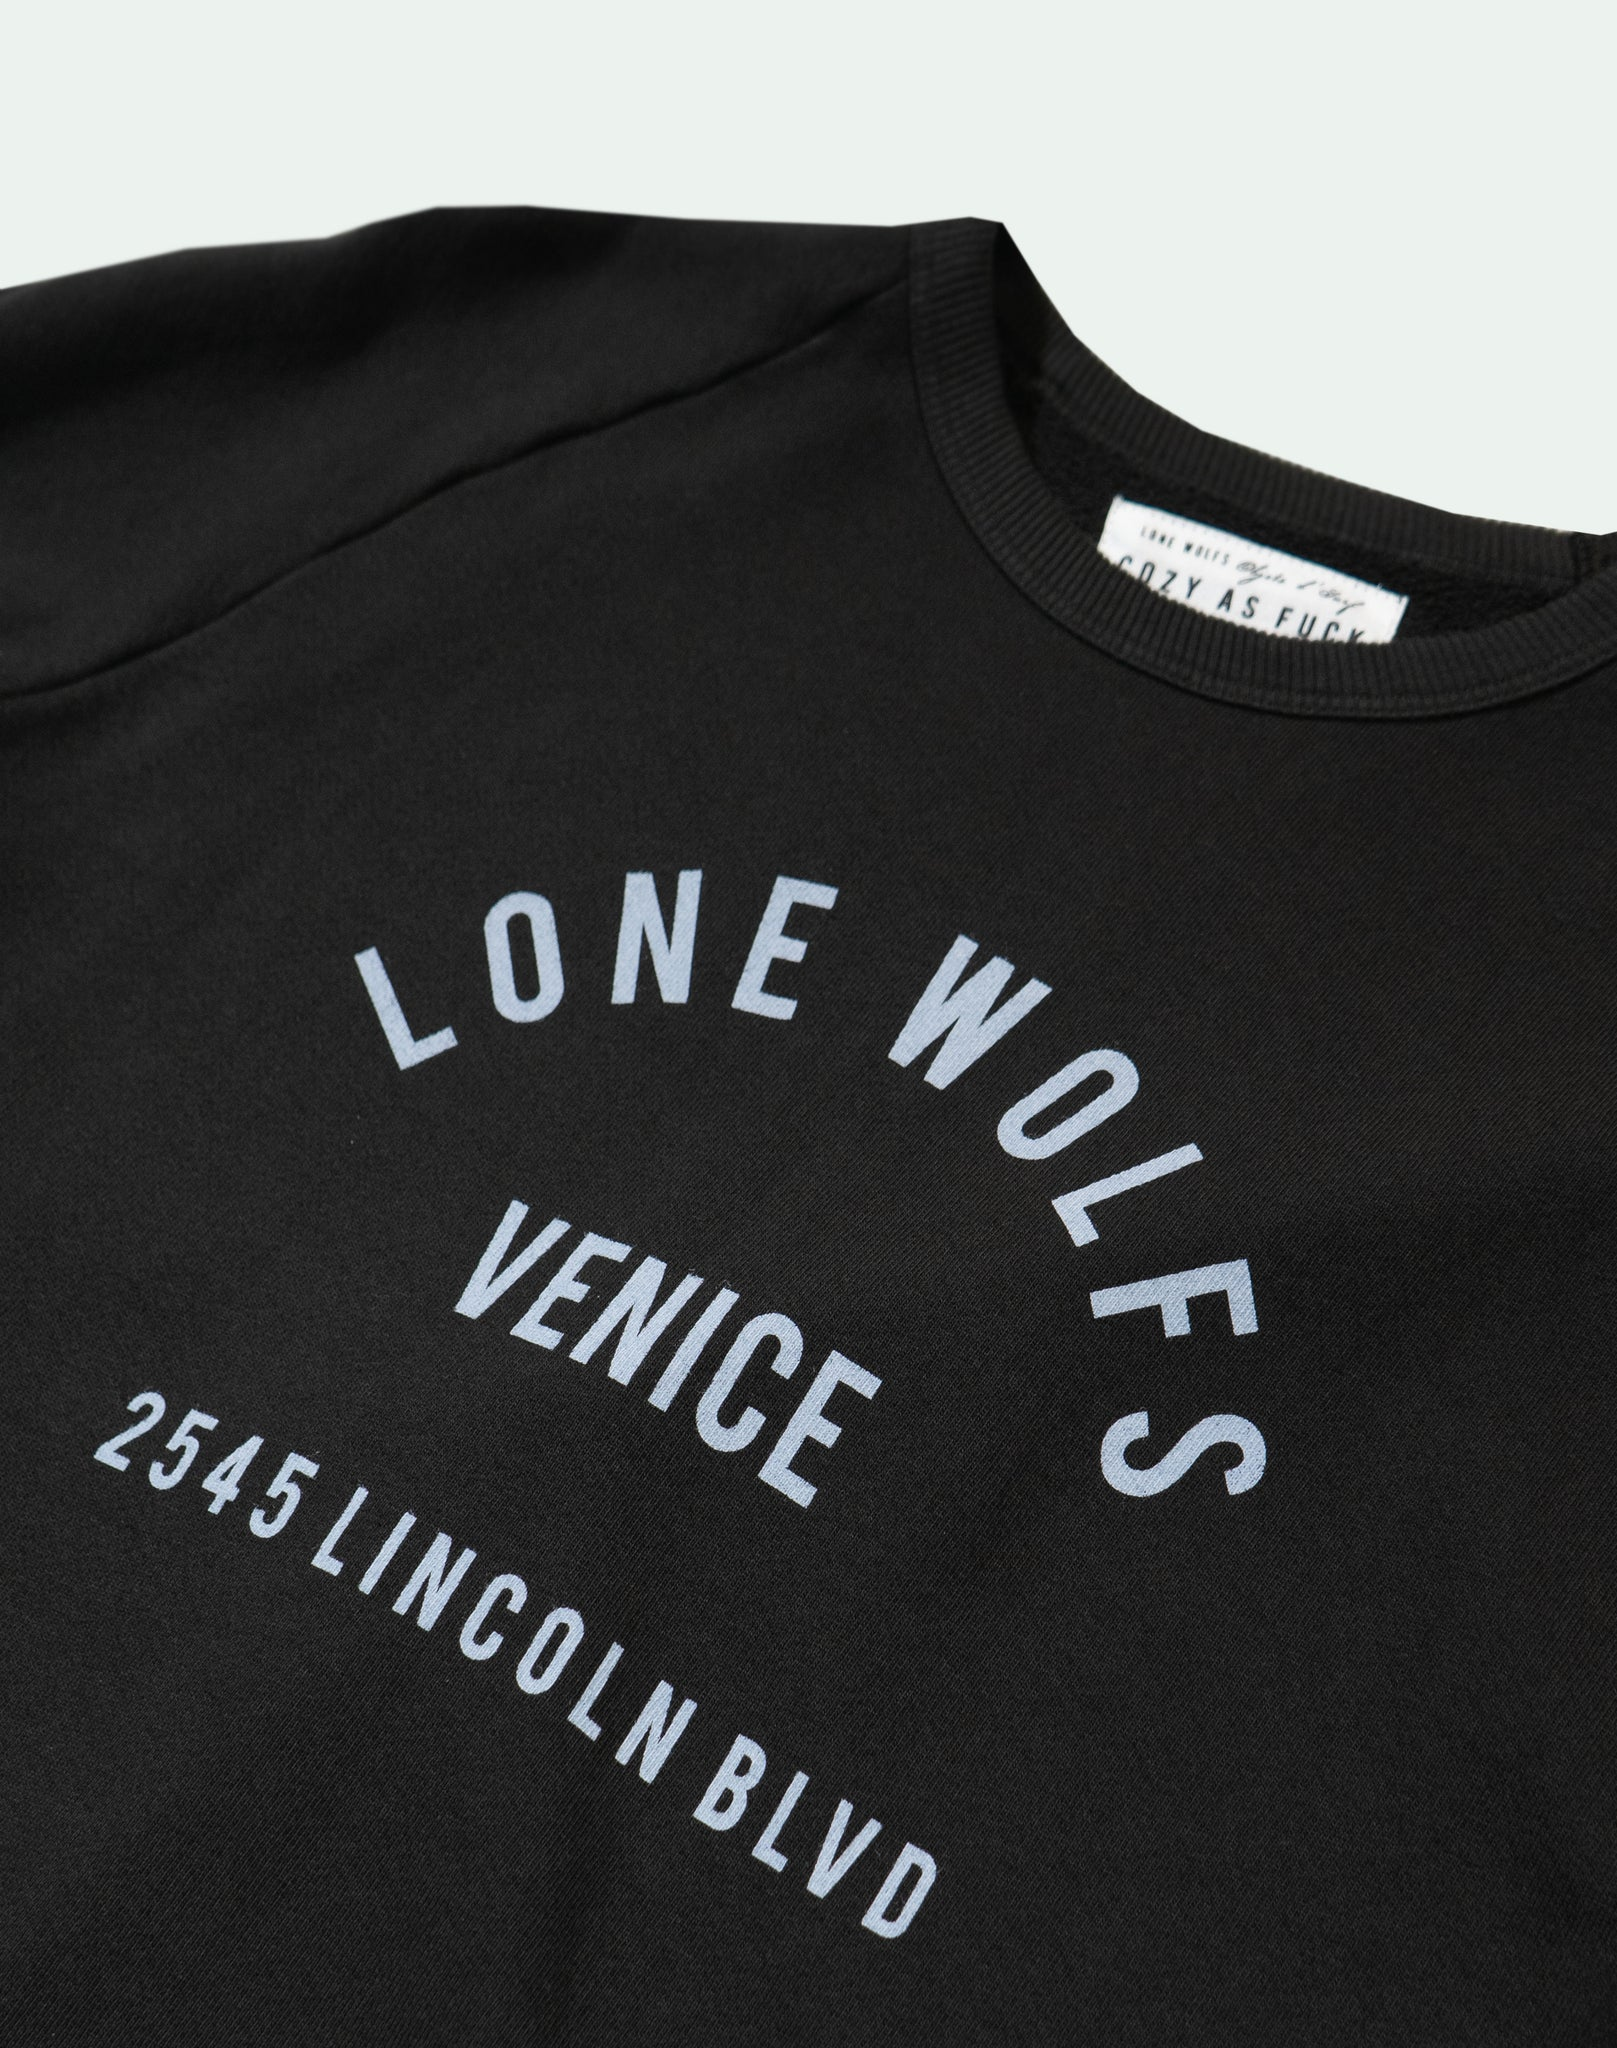 Lone Wolfs Shop Arc Sweatshirt